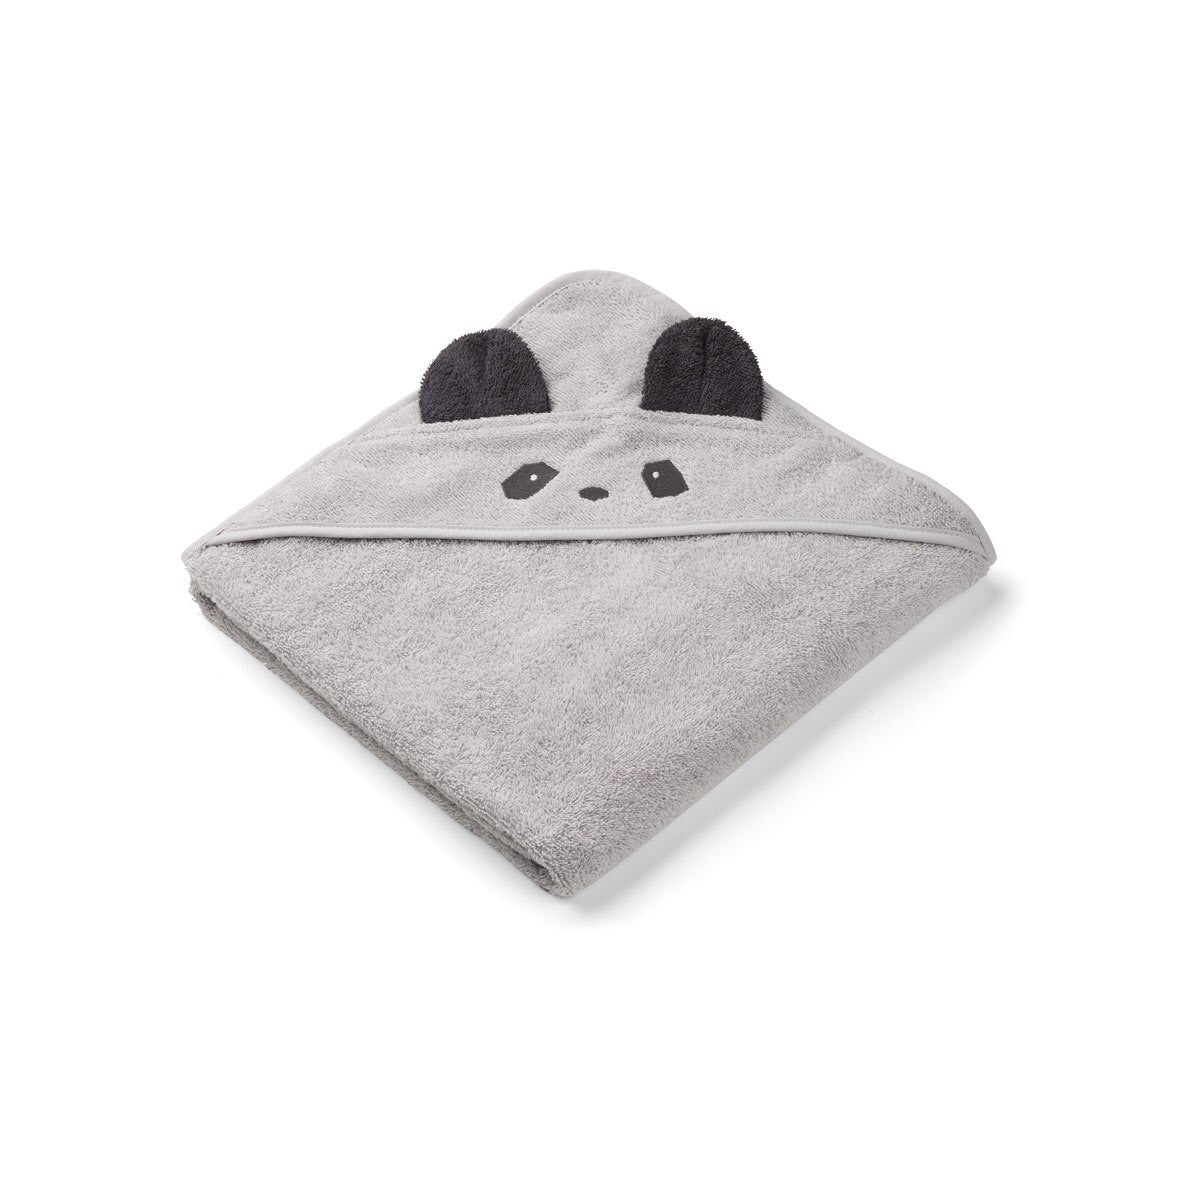 augusta hooded towel - panda dumbo grey 灰色熊貓公仔有機棉浴巾